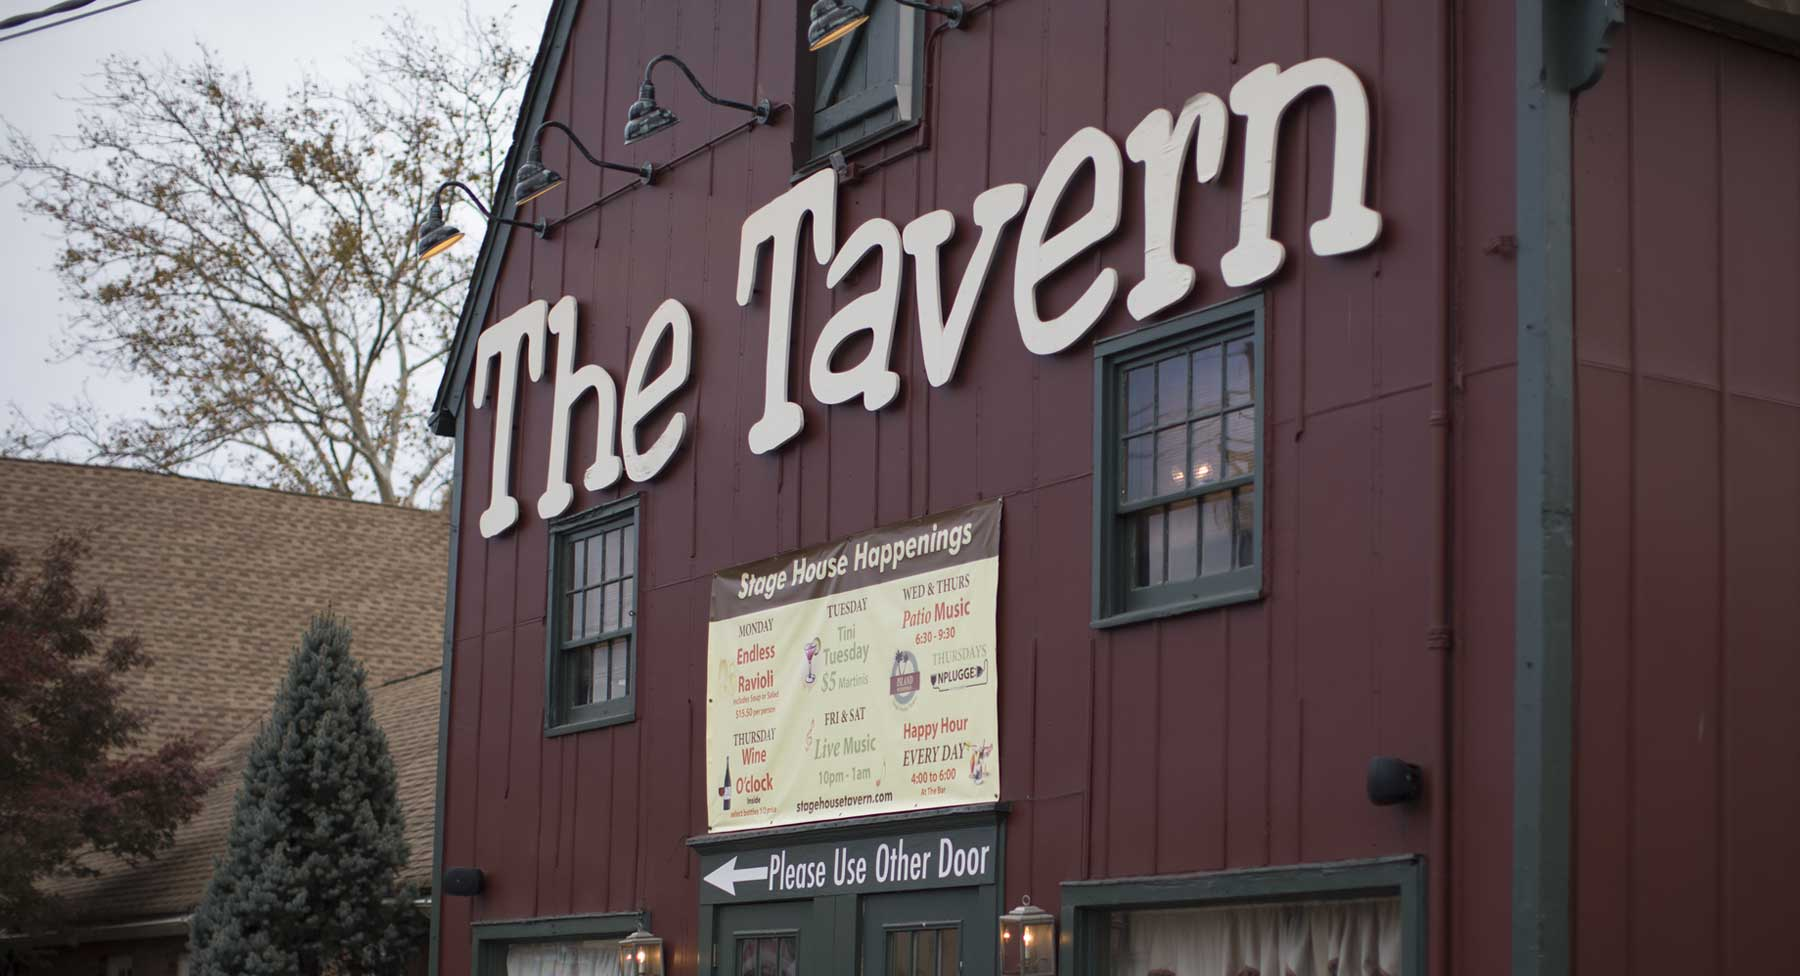 exterior shot of The Tavern